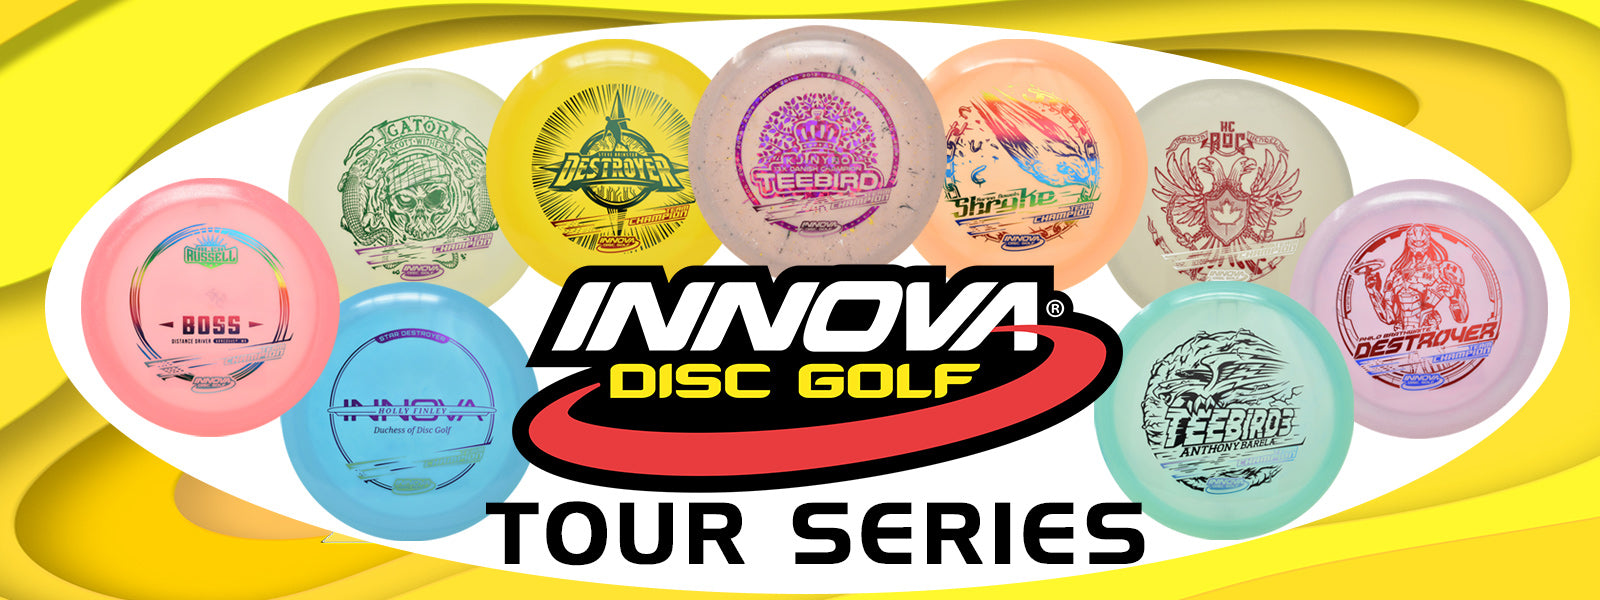 innova 2020 tour series discs arranged in an oval